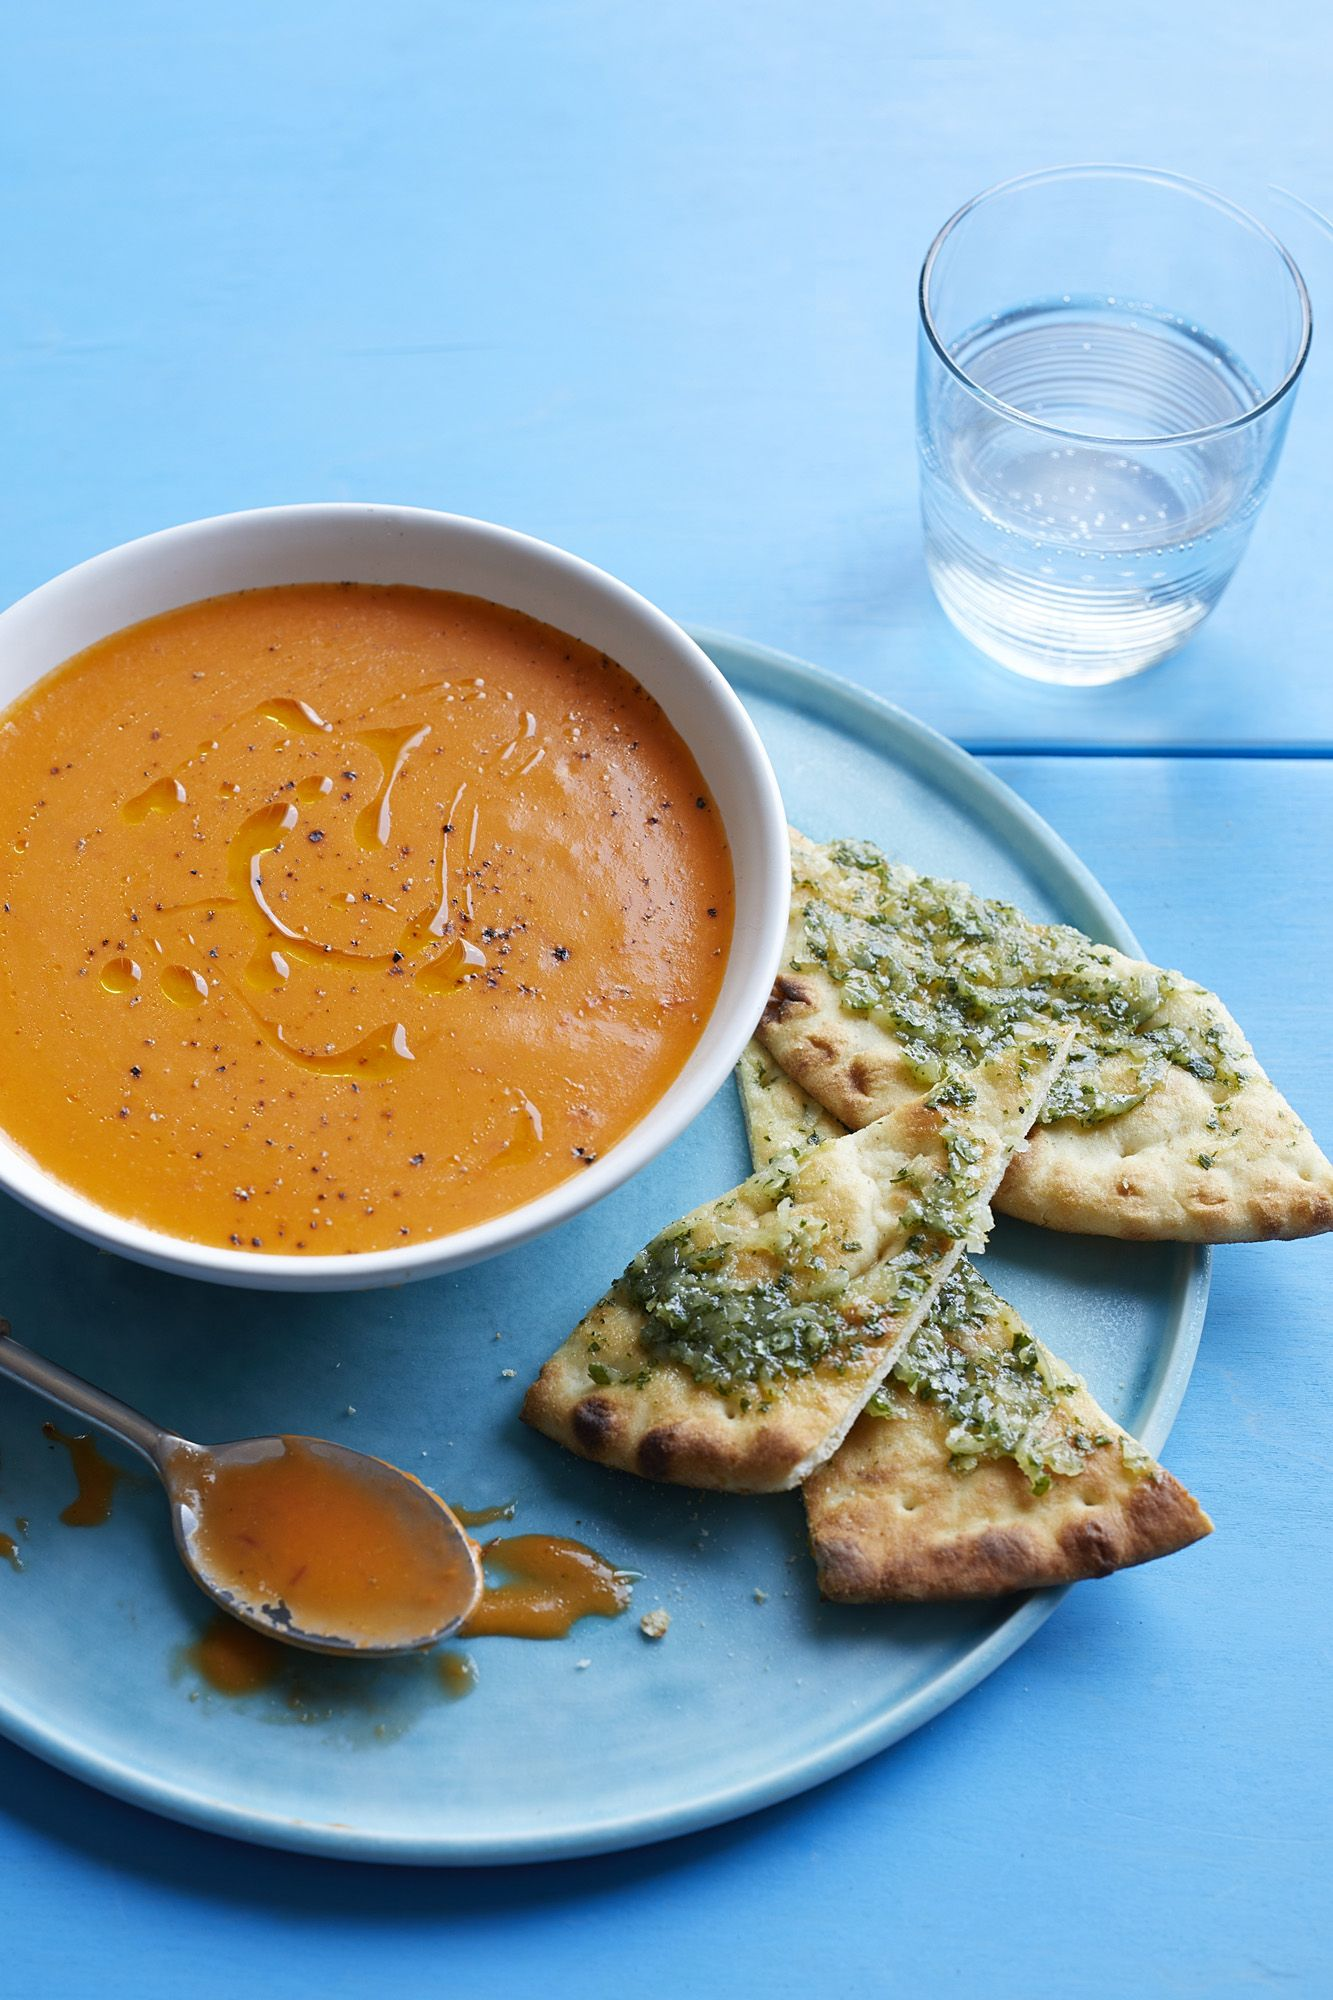 Spiced Tomato Soup with Flatbread